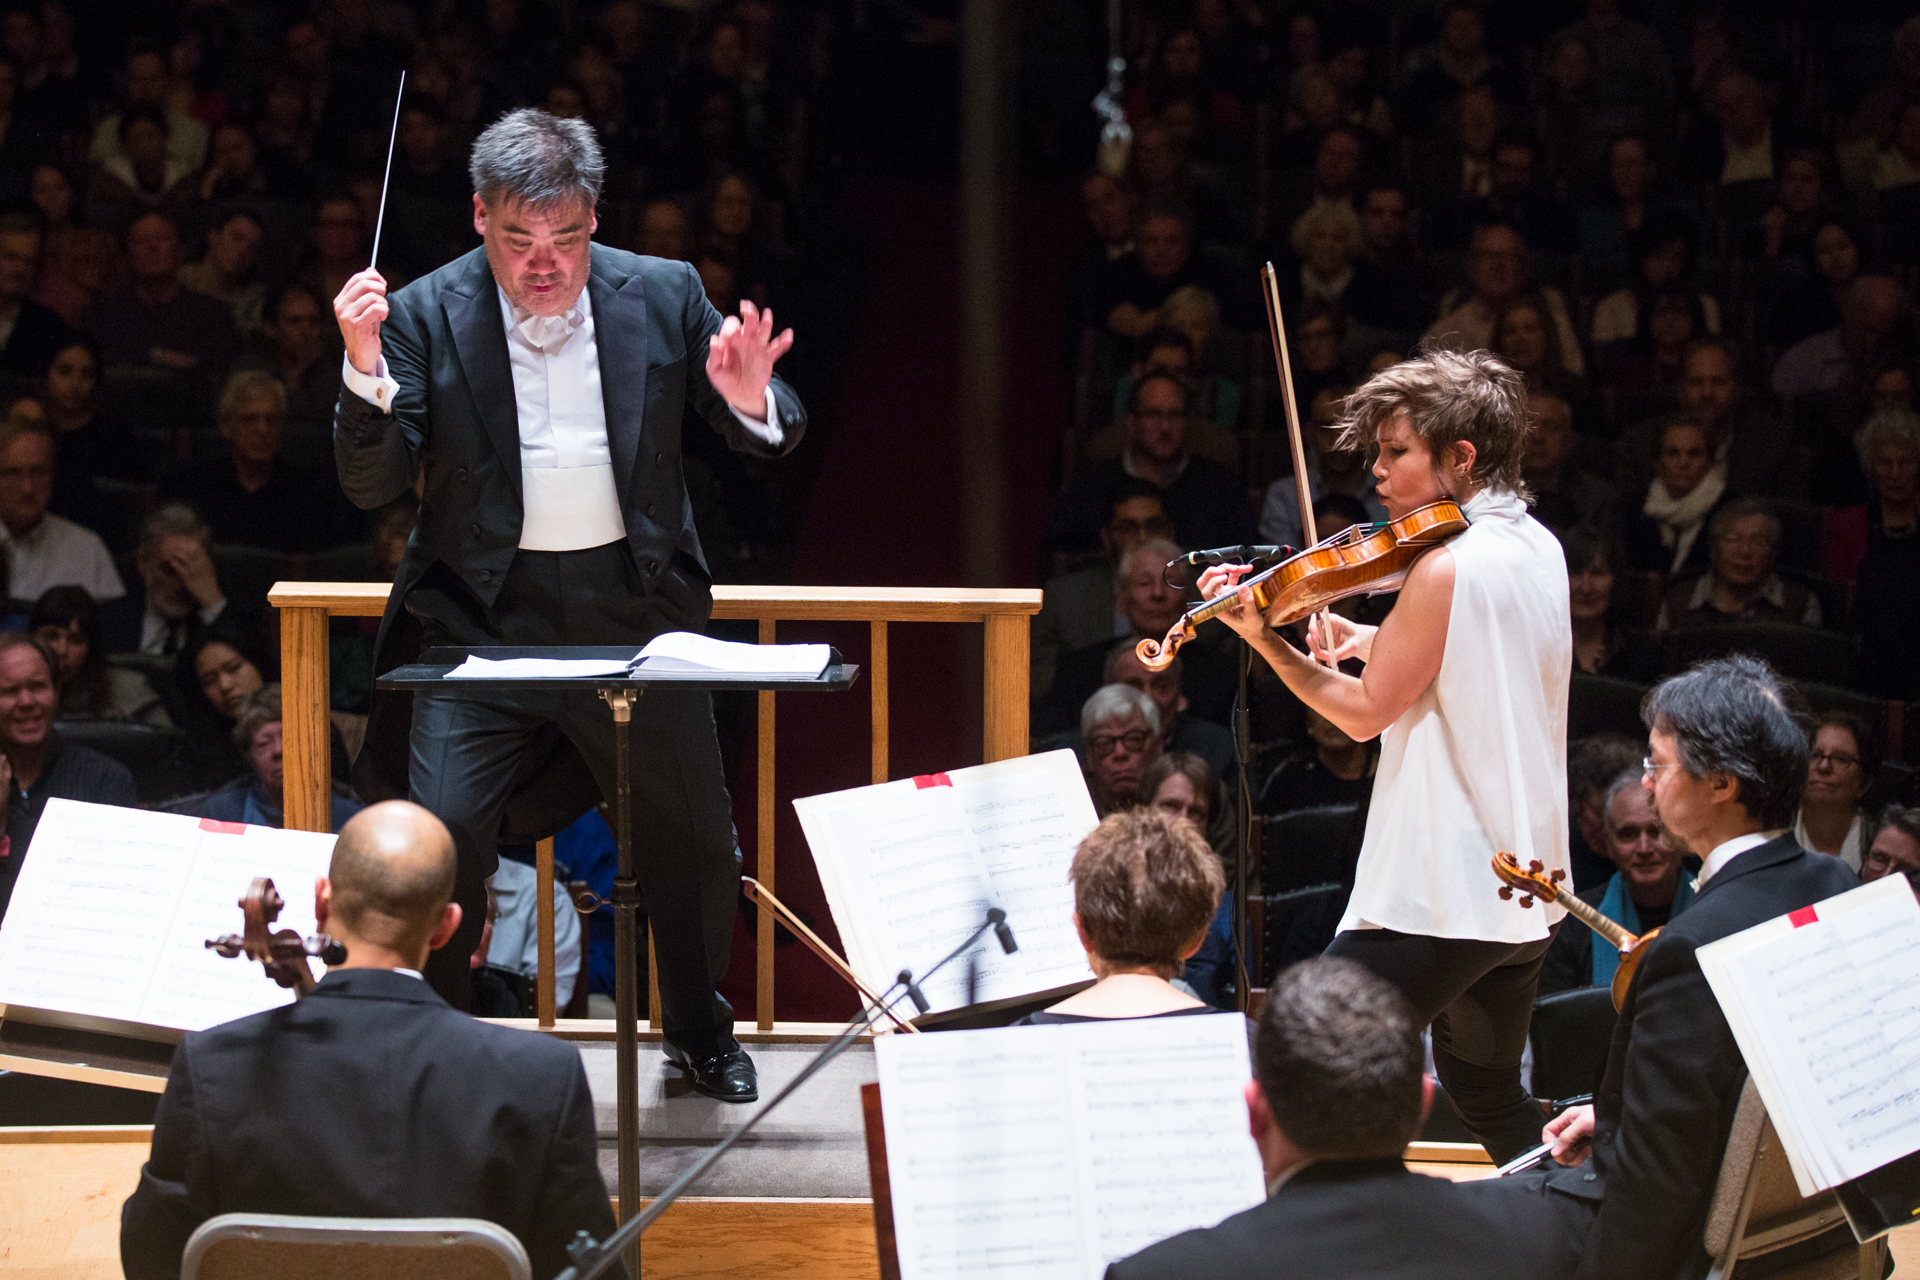 Alan Gilbert conducts the Boston Symphony Orchestra on March 1 in Symphony Hall. Leila Josefowicz performs John Adams's Scherazade.2. Robert Torres photograph